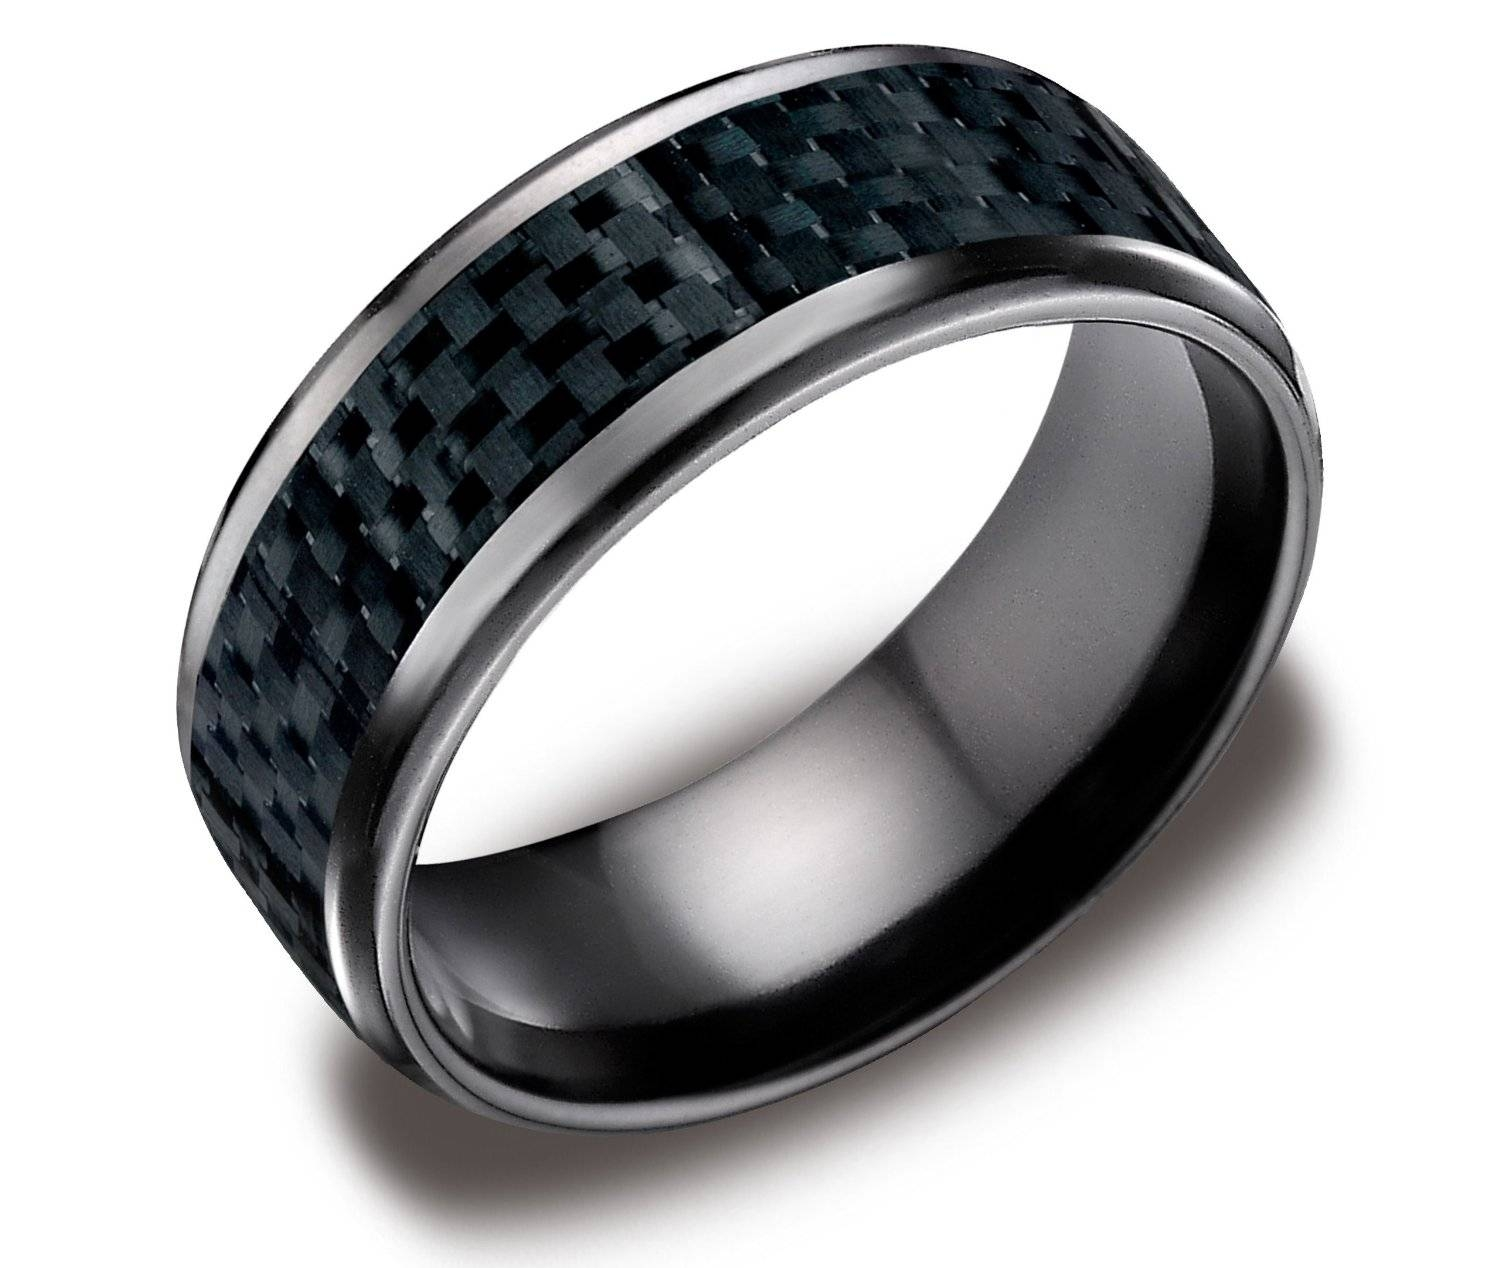 Unconventional Wedding Rings Tags : Unique Wedding Rings Sets Inside Black Titanium Mens Wedding Rings (Gallery 13 of 15)